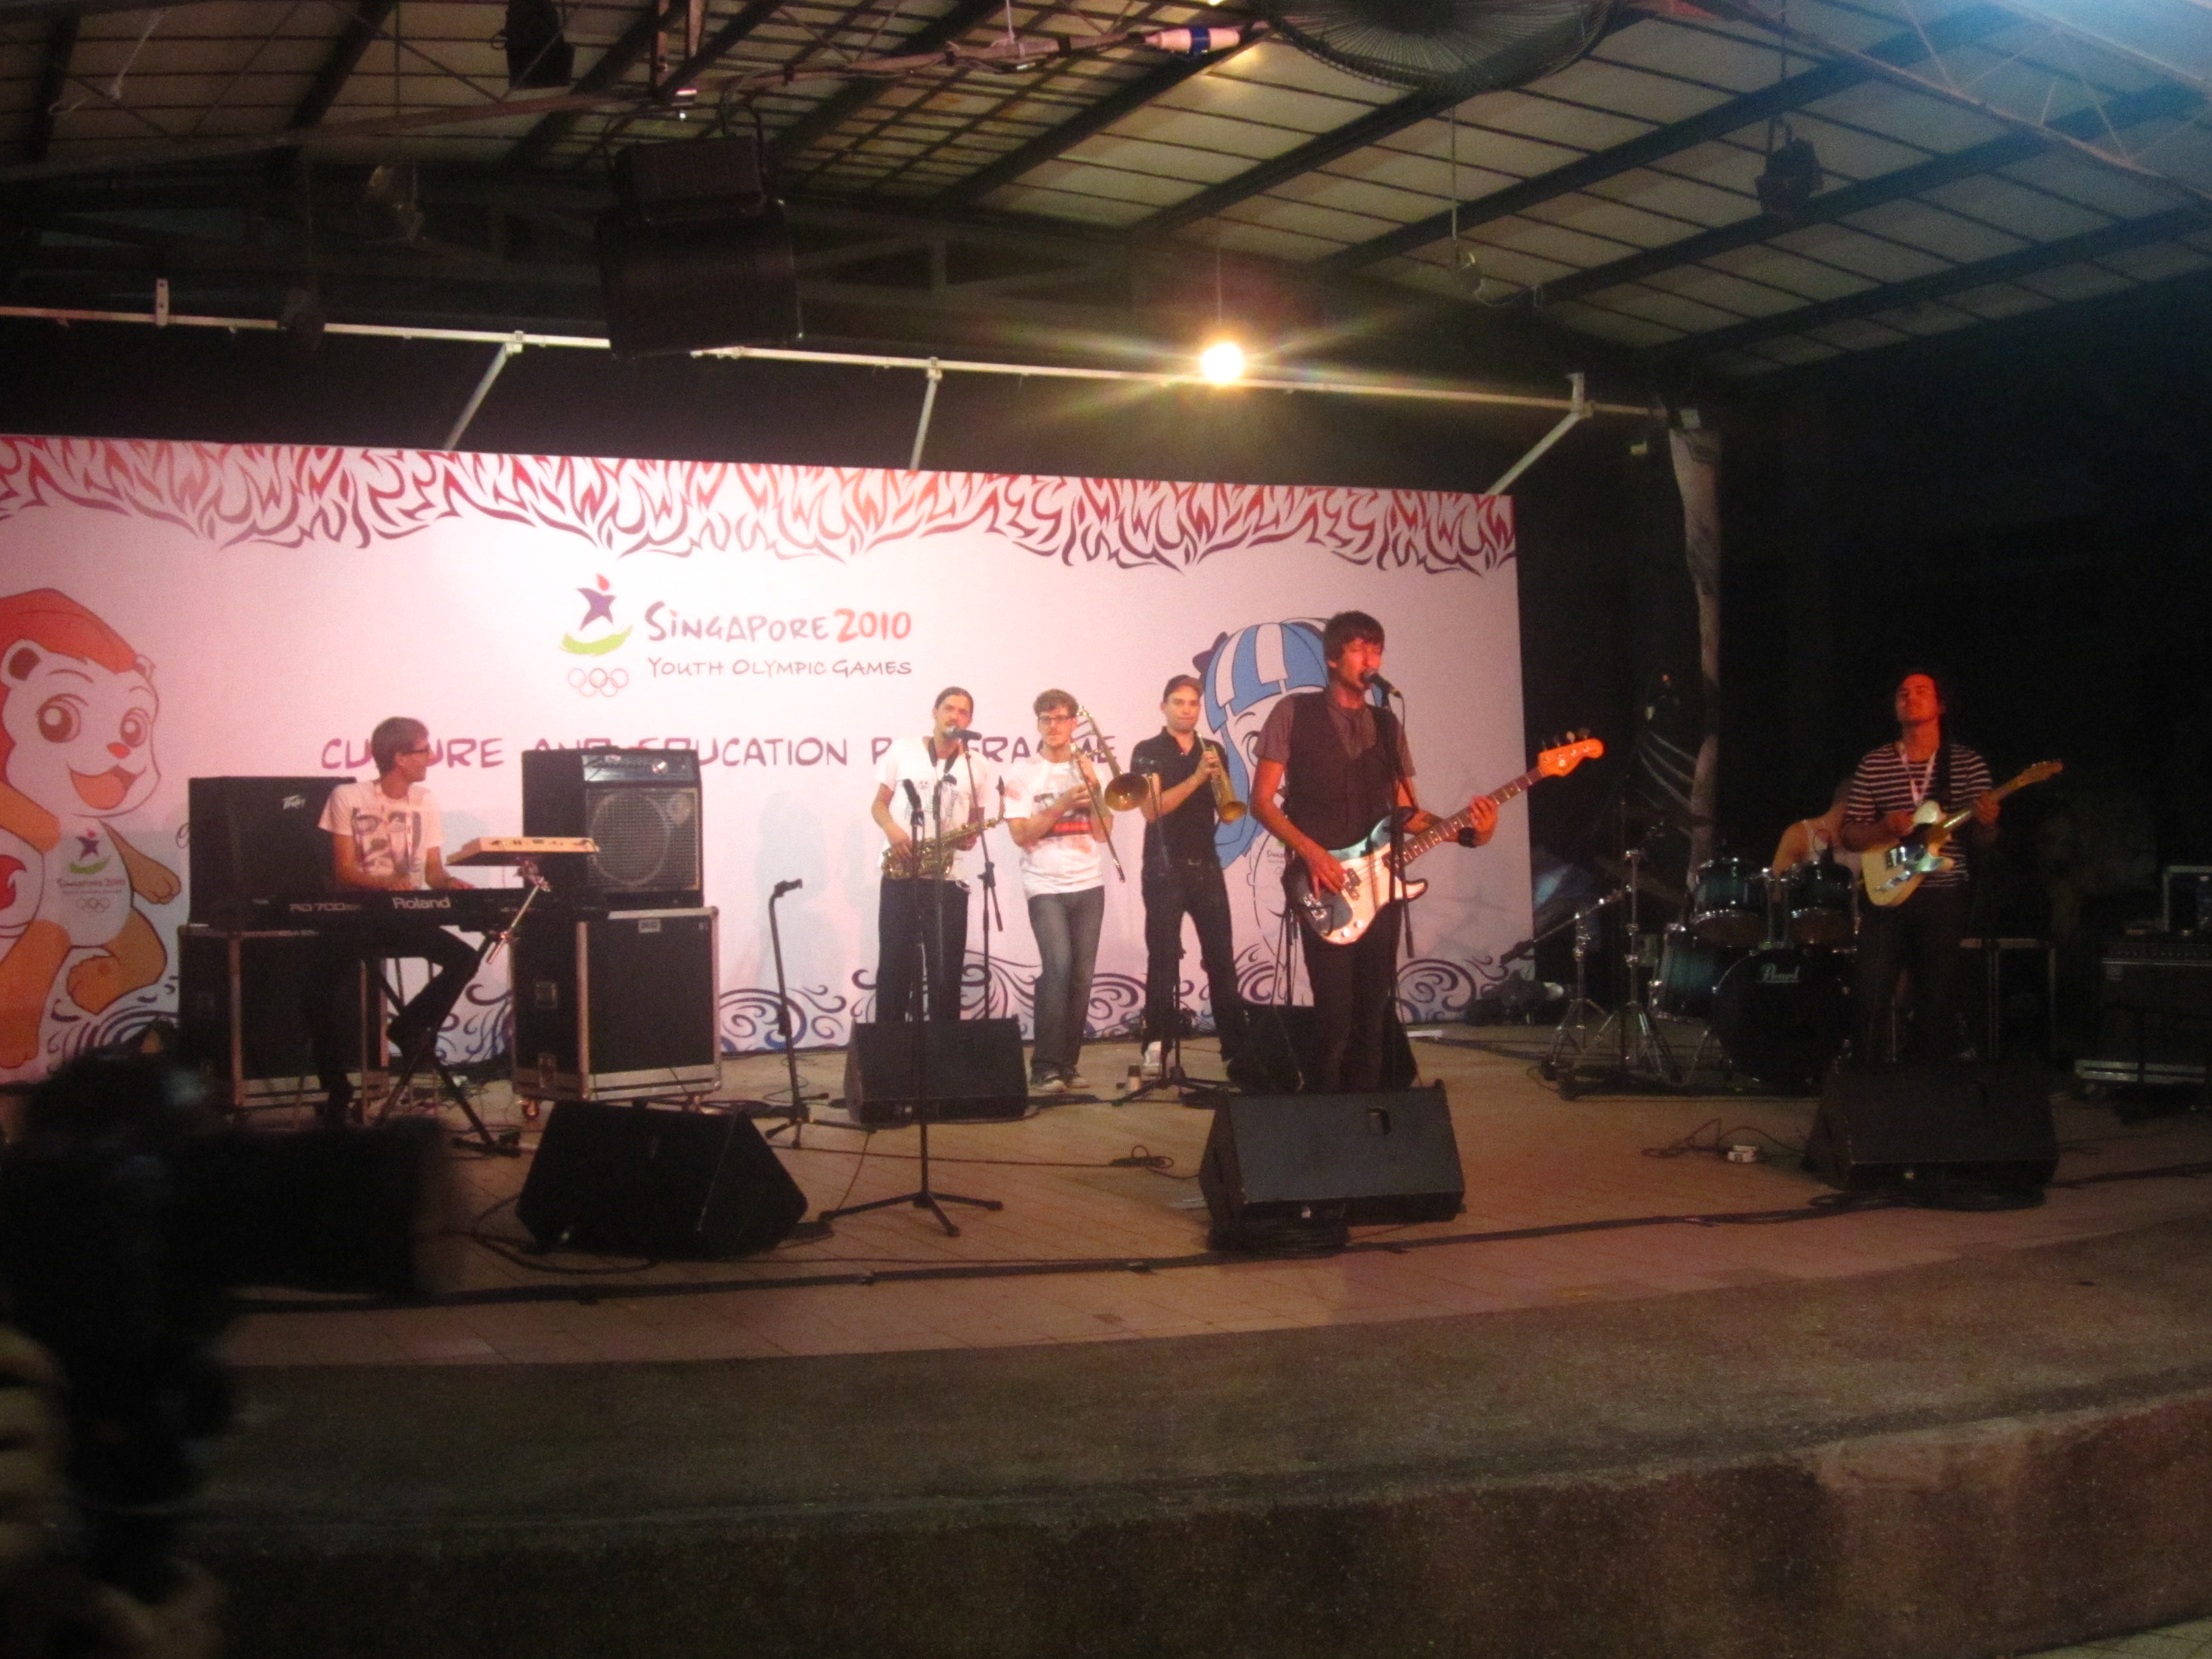 YOG Photo of the Day: Swiss Band Starch at *SCAPE